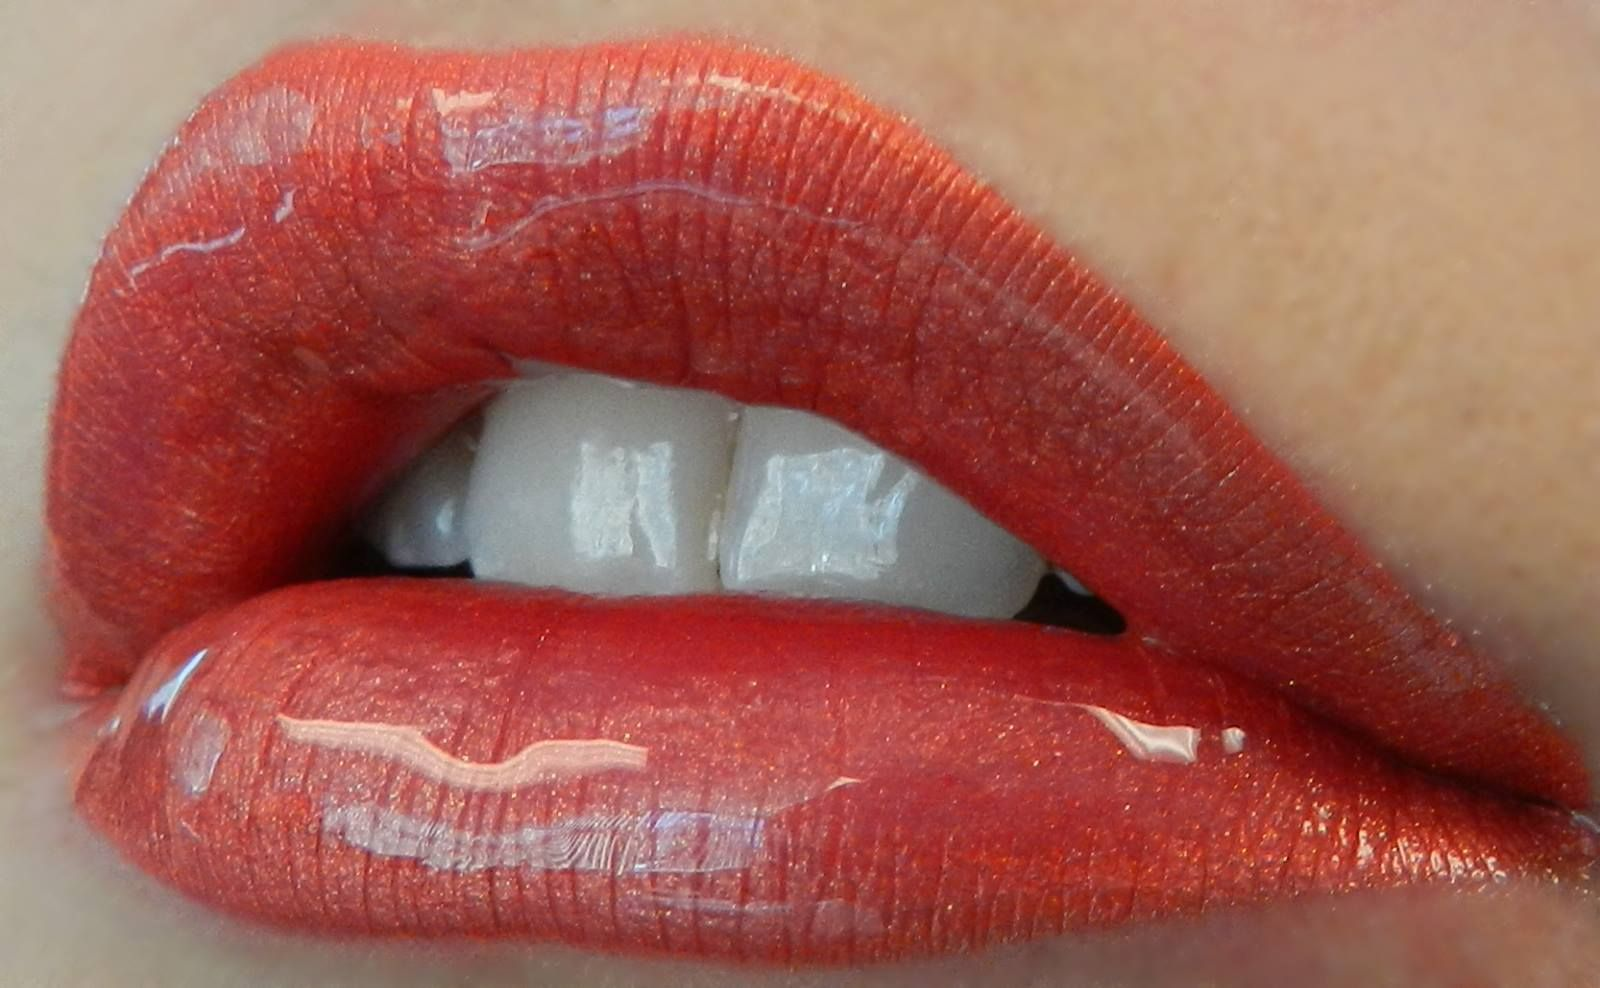 3 layers of LipSense: Spice Ice, Luv It and Coral Ice